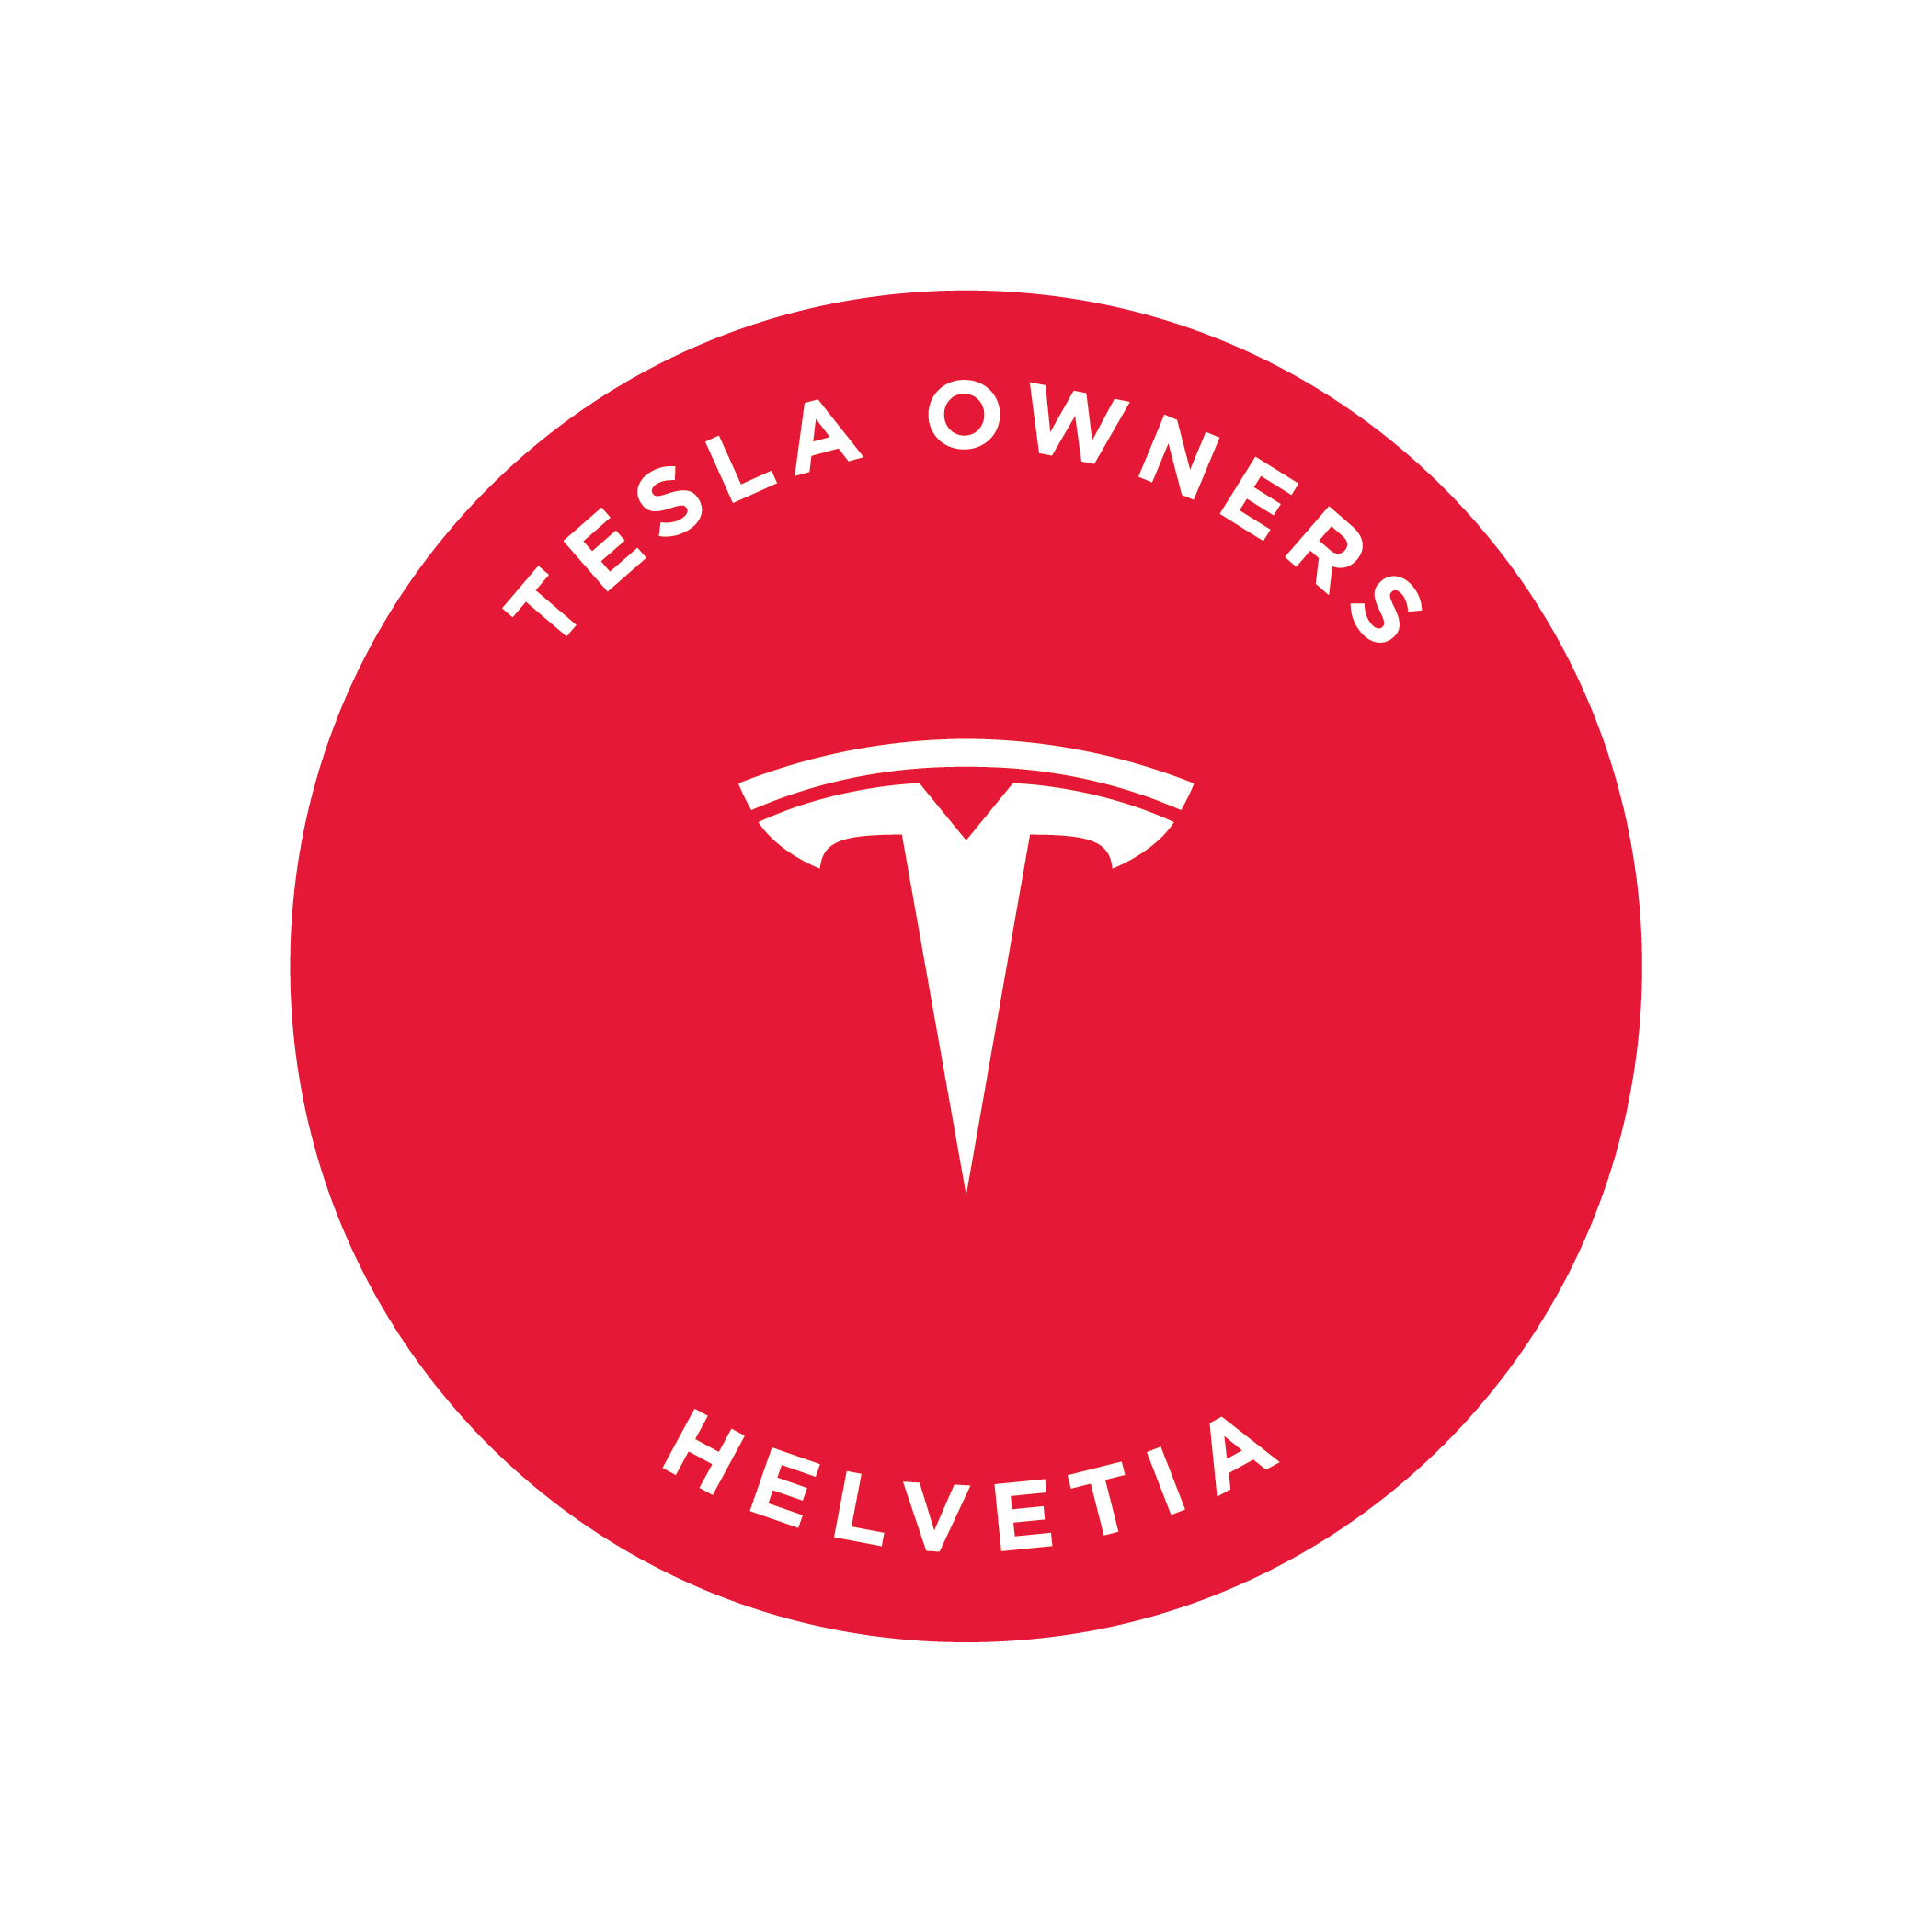 teslaowners.ch